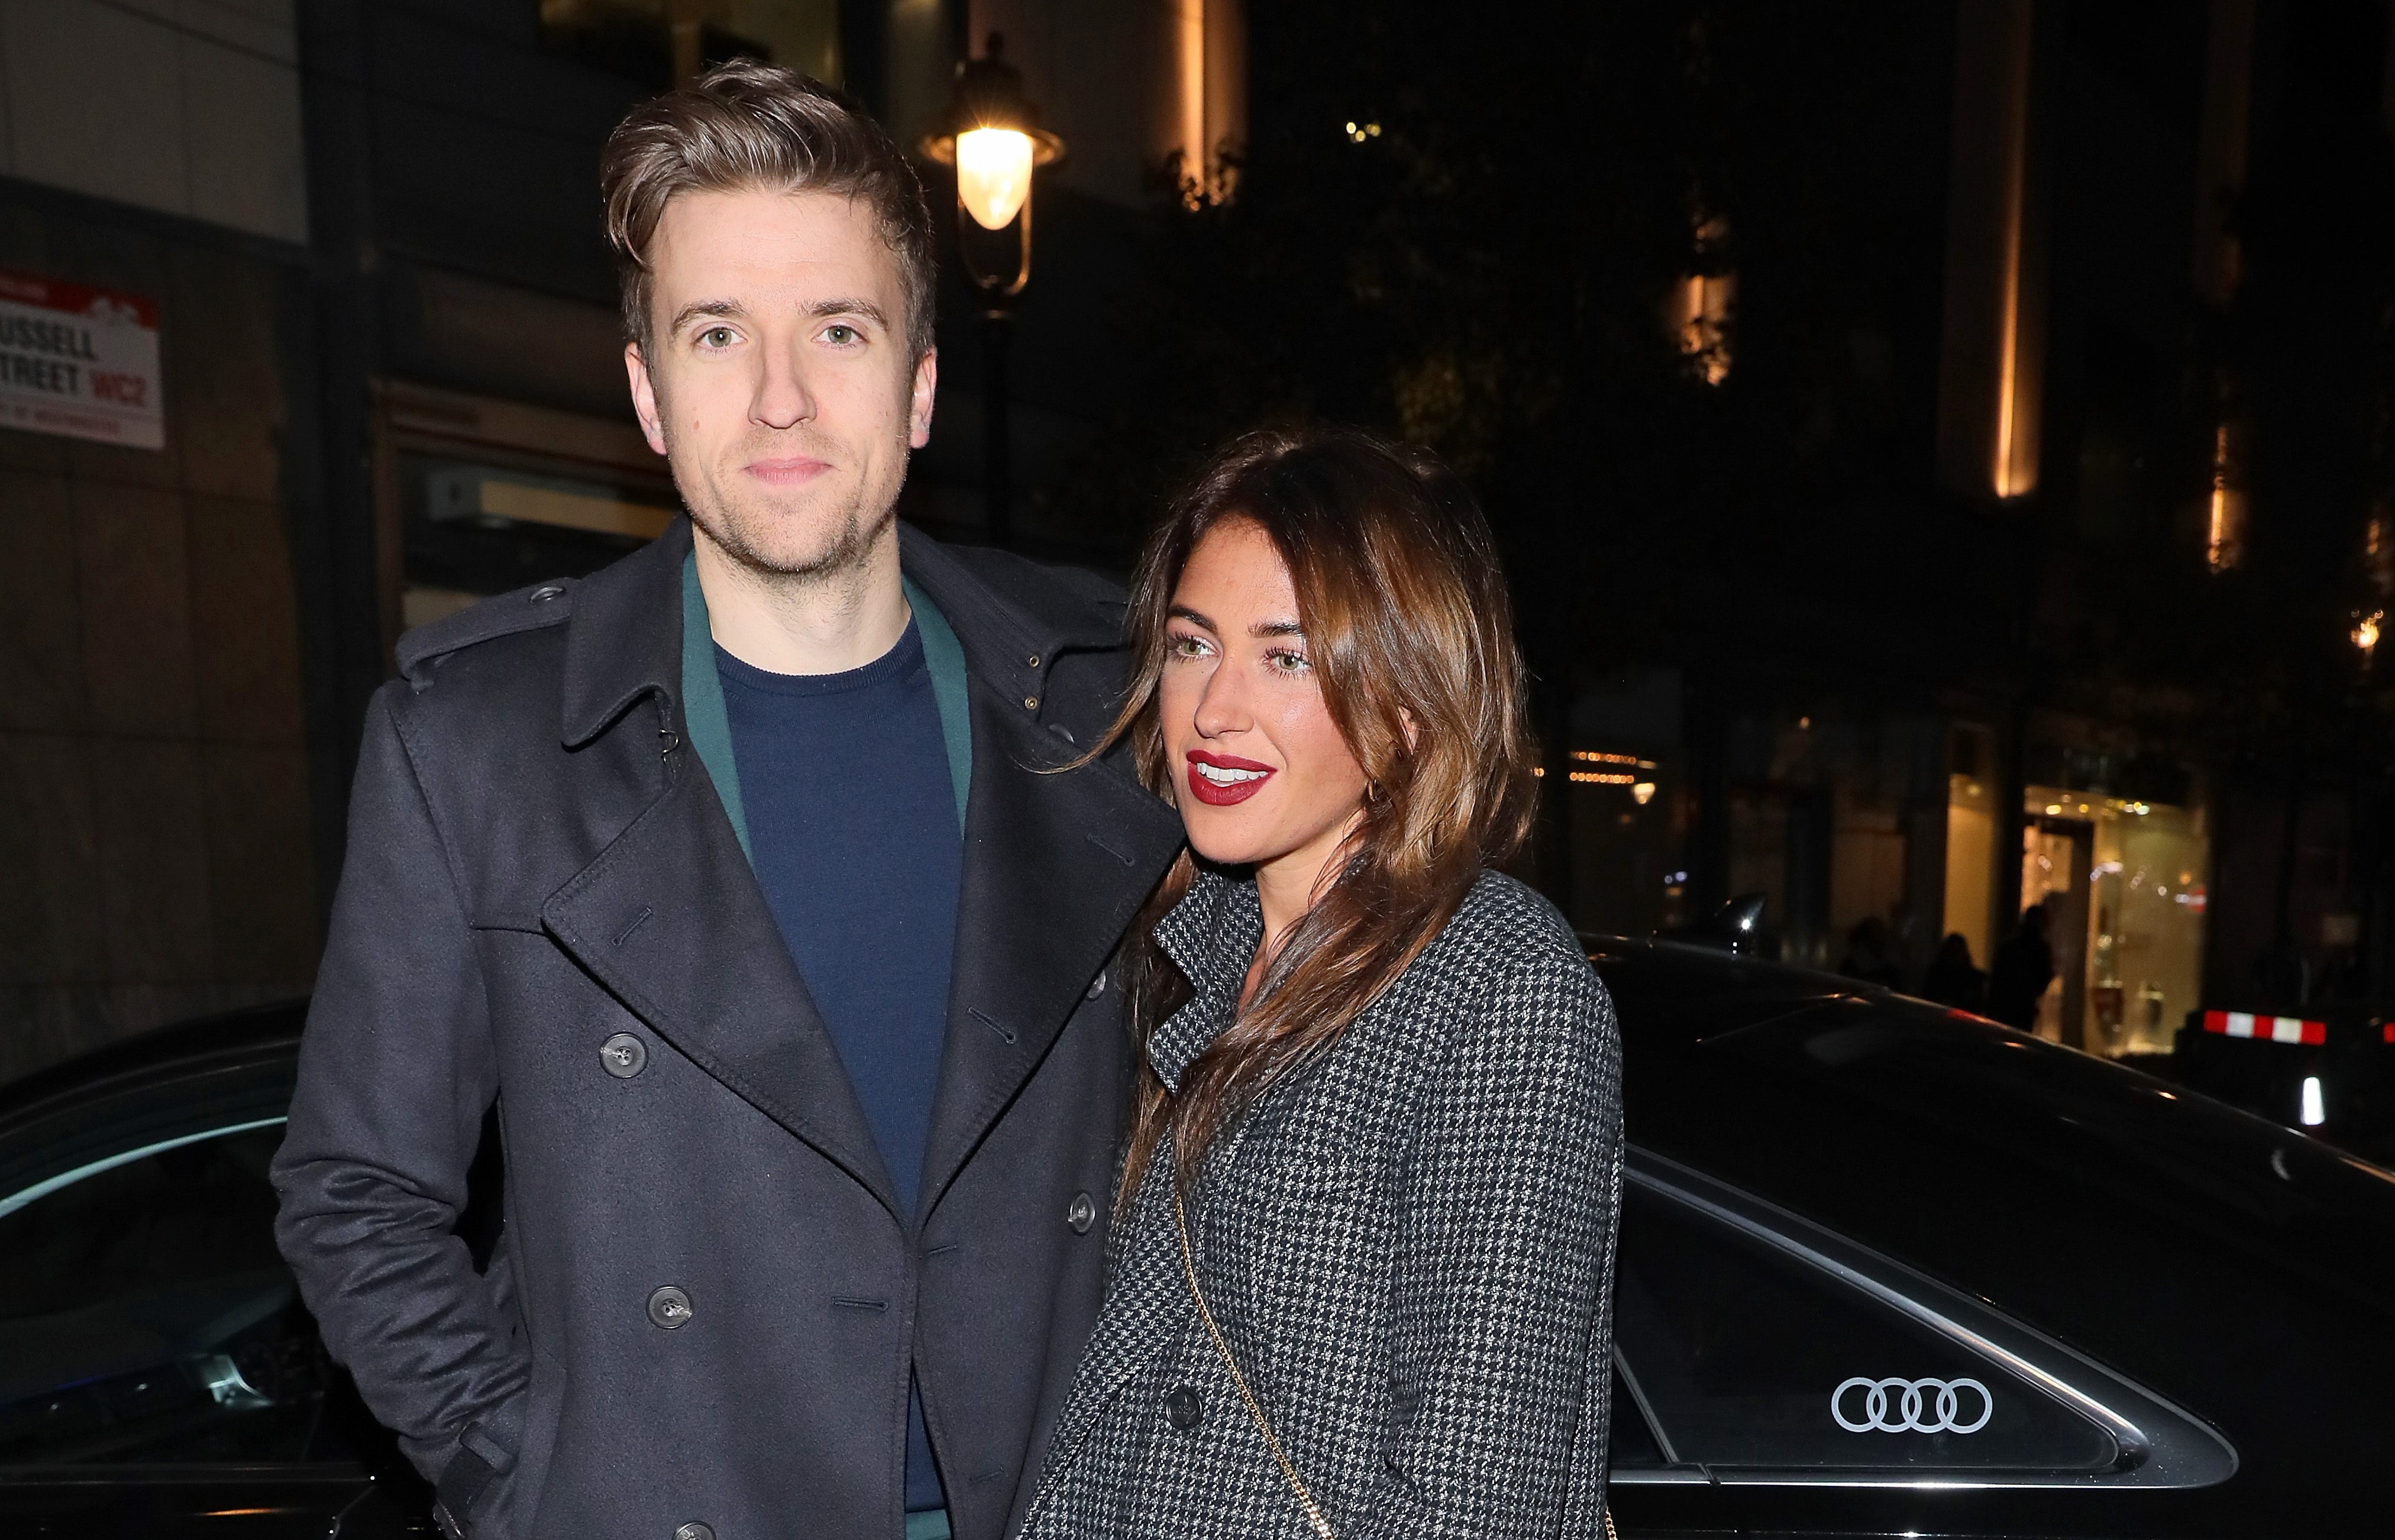 Greg James and Bella Mackie arrive in an Audi at British GQ's 30 Years Anniversary Celebration at SUSHISAMBA on October 29, 2018 in London, Englan  (Photo by David M. Benett/Dave Benett/Getty Images for Audi UK)